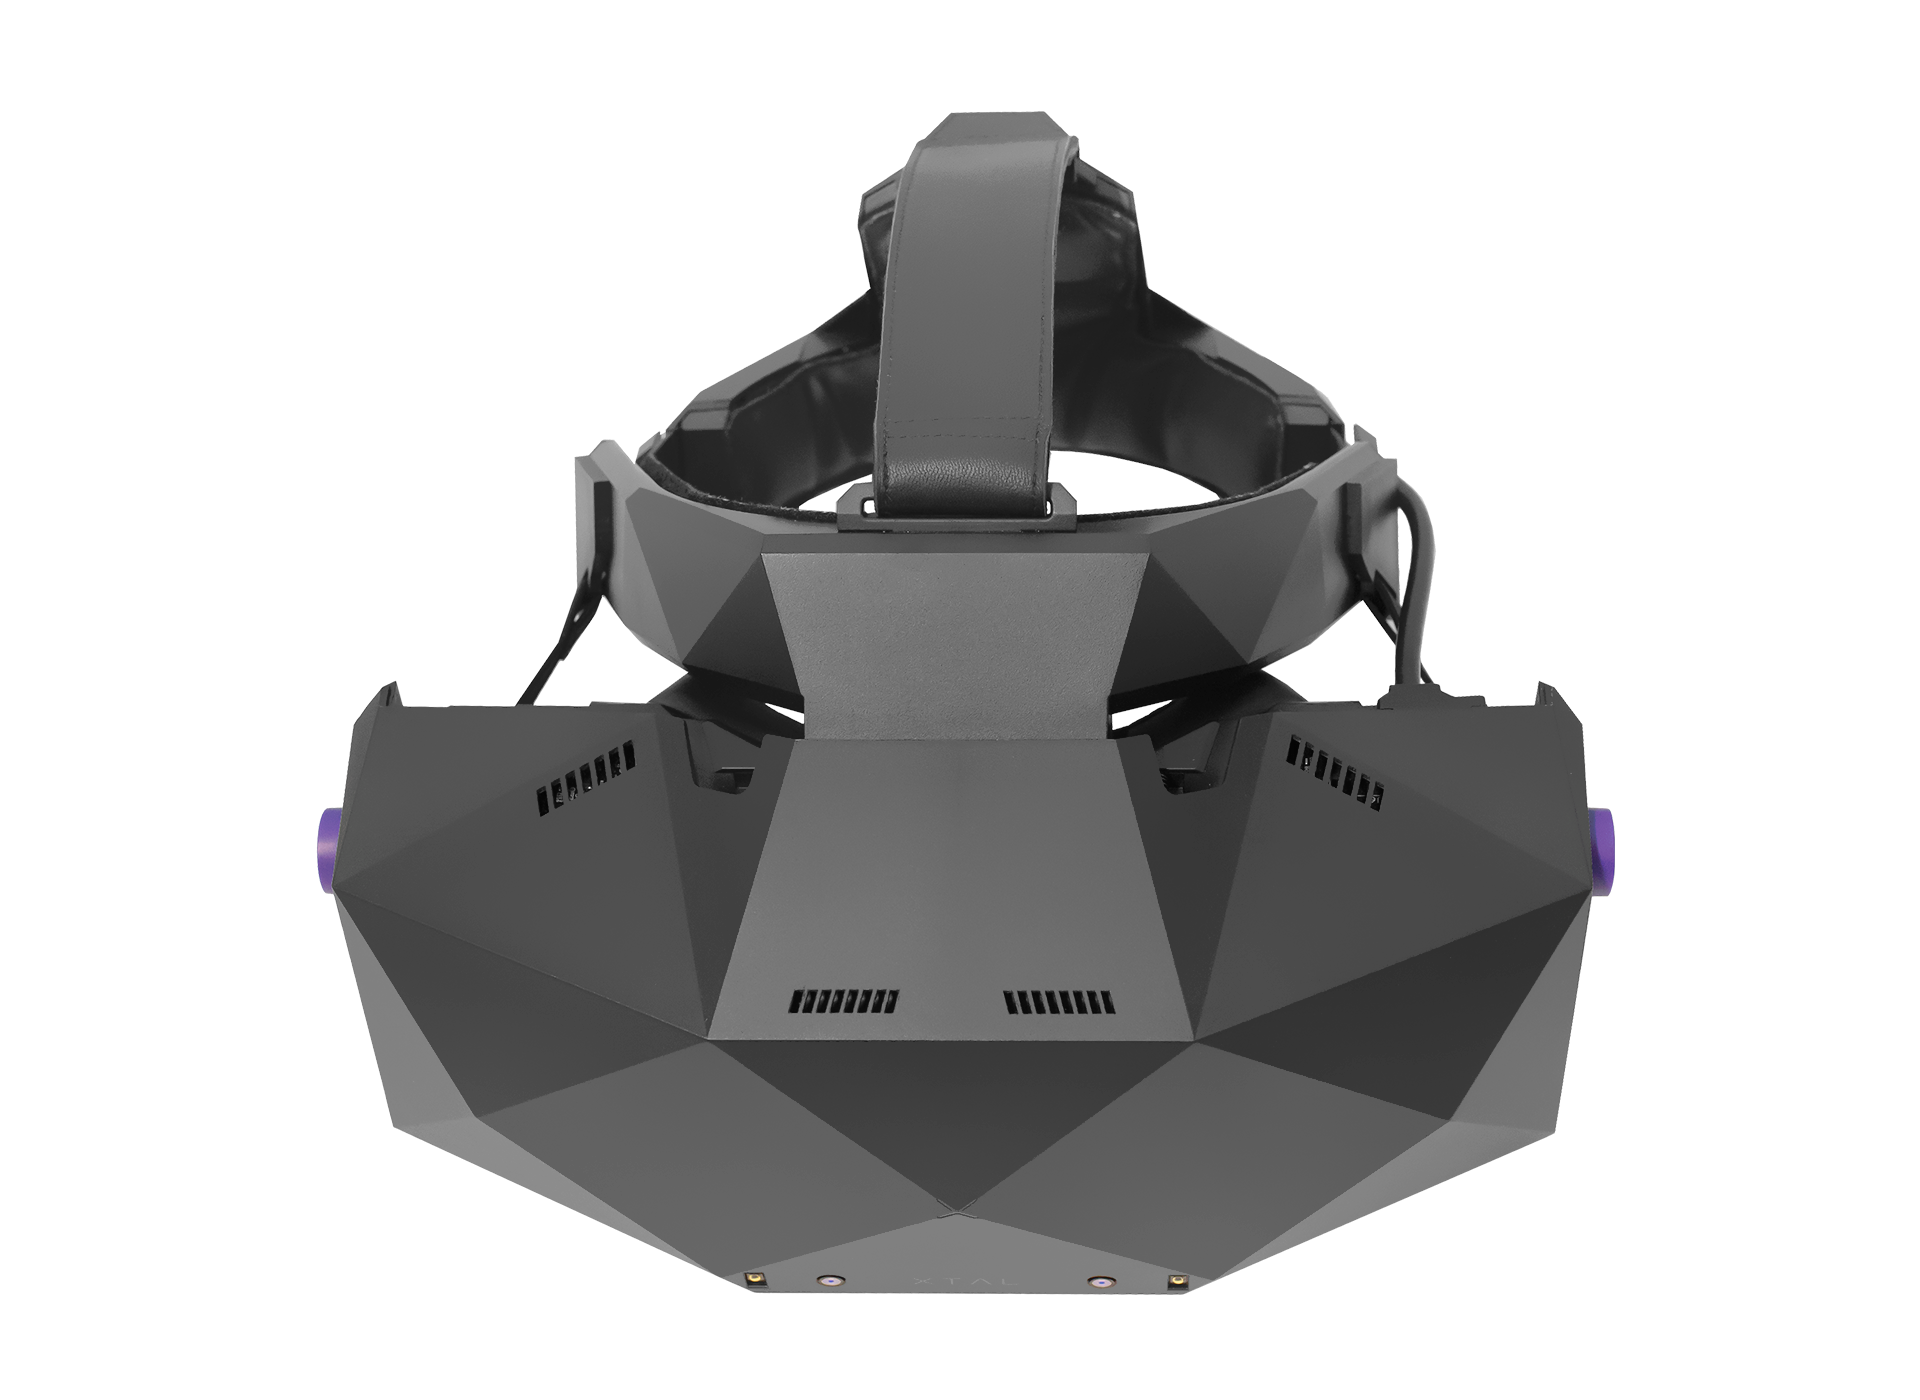 XTAL 8K professional VR headset top view without tracking